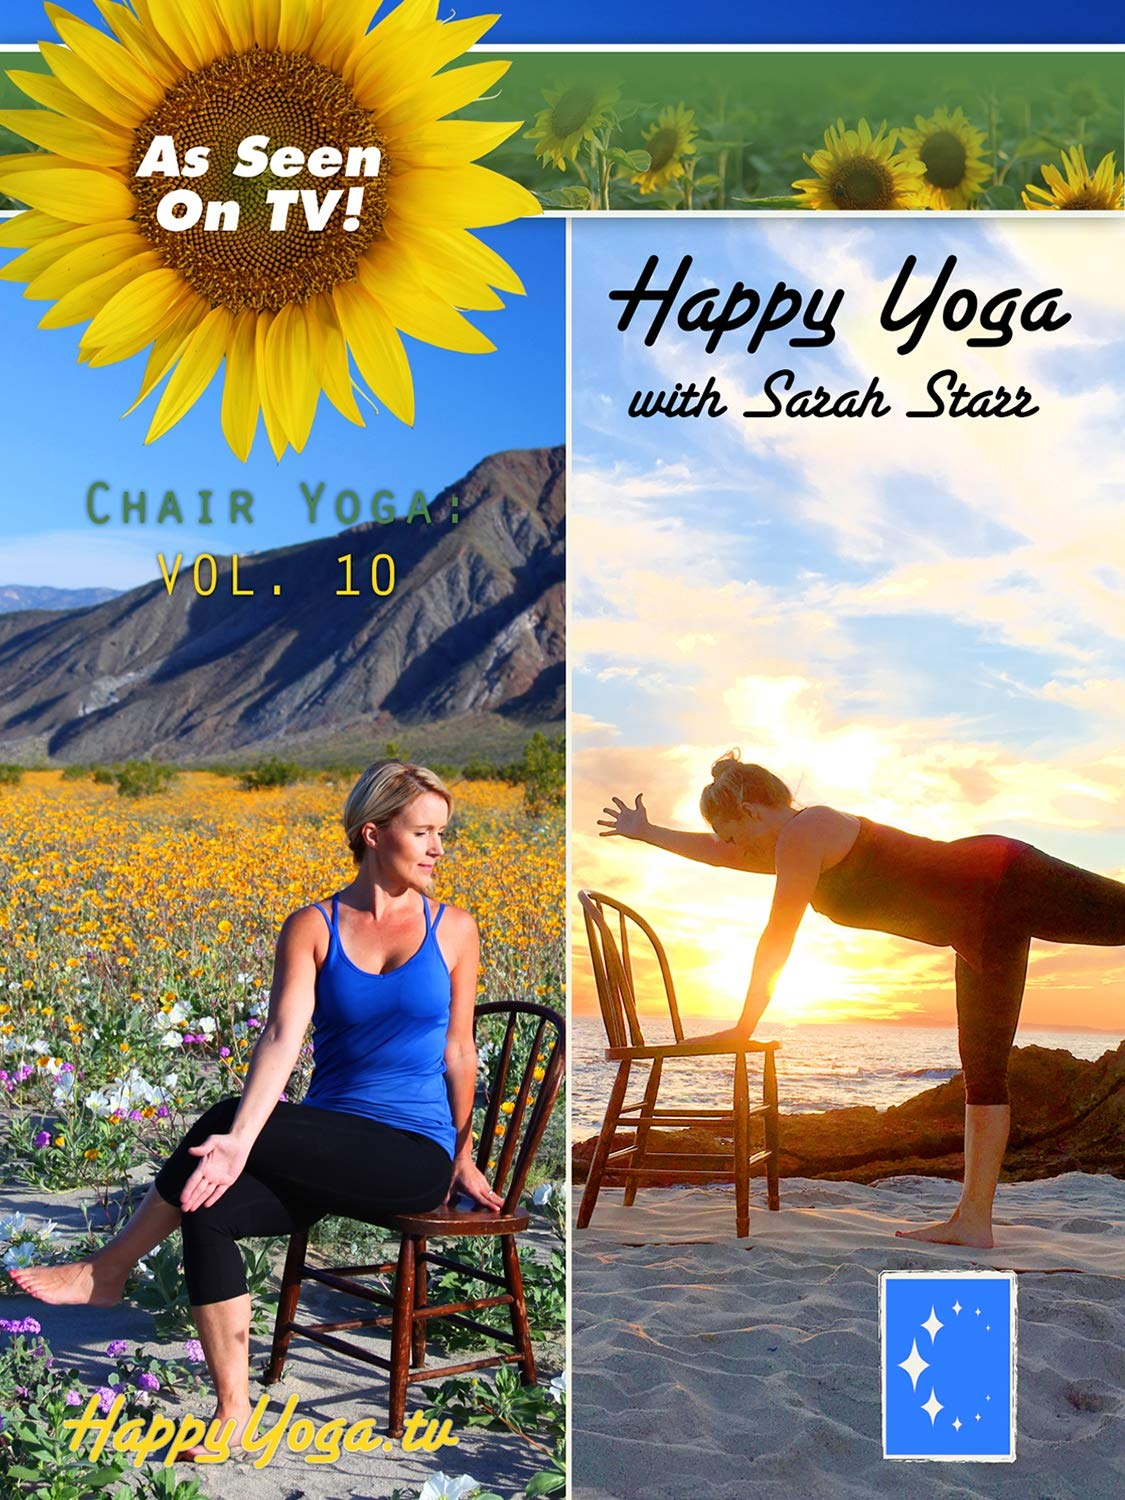 Happy Yoga with Sarah Raleigh Mall Chair Starr Industry No. 1 Volume 10